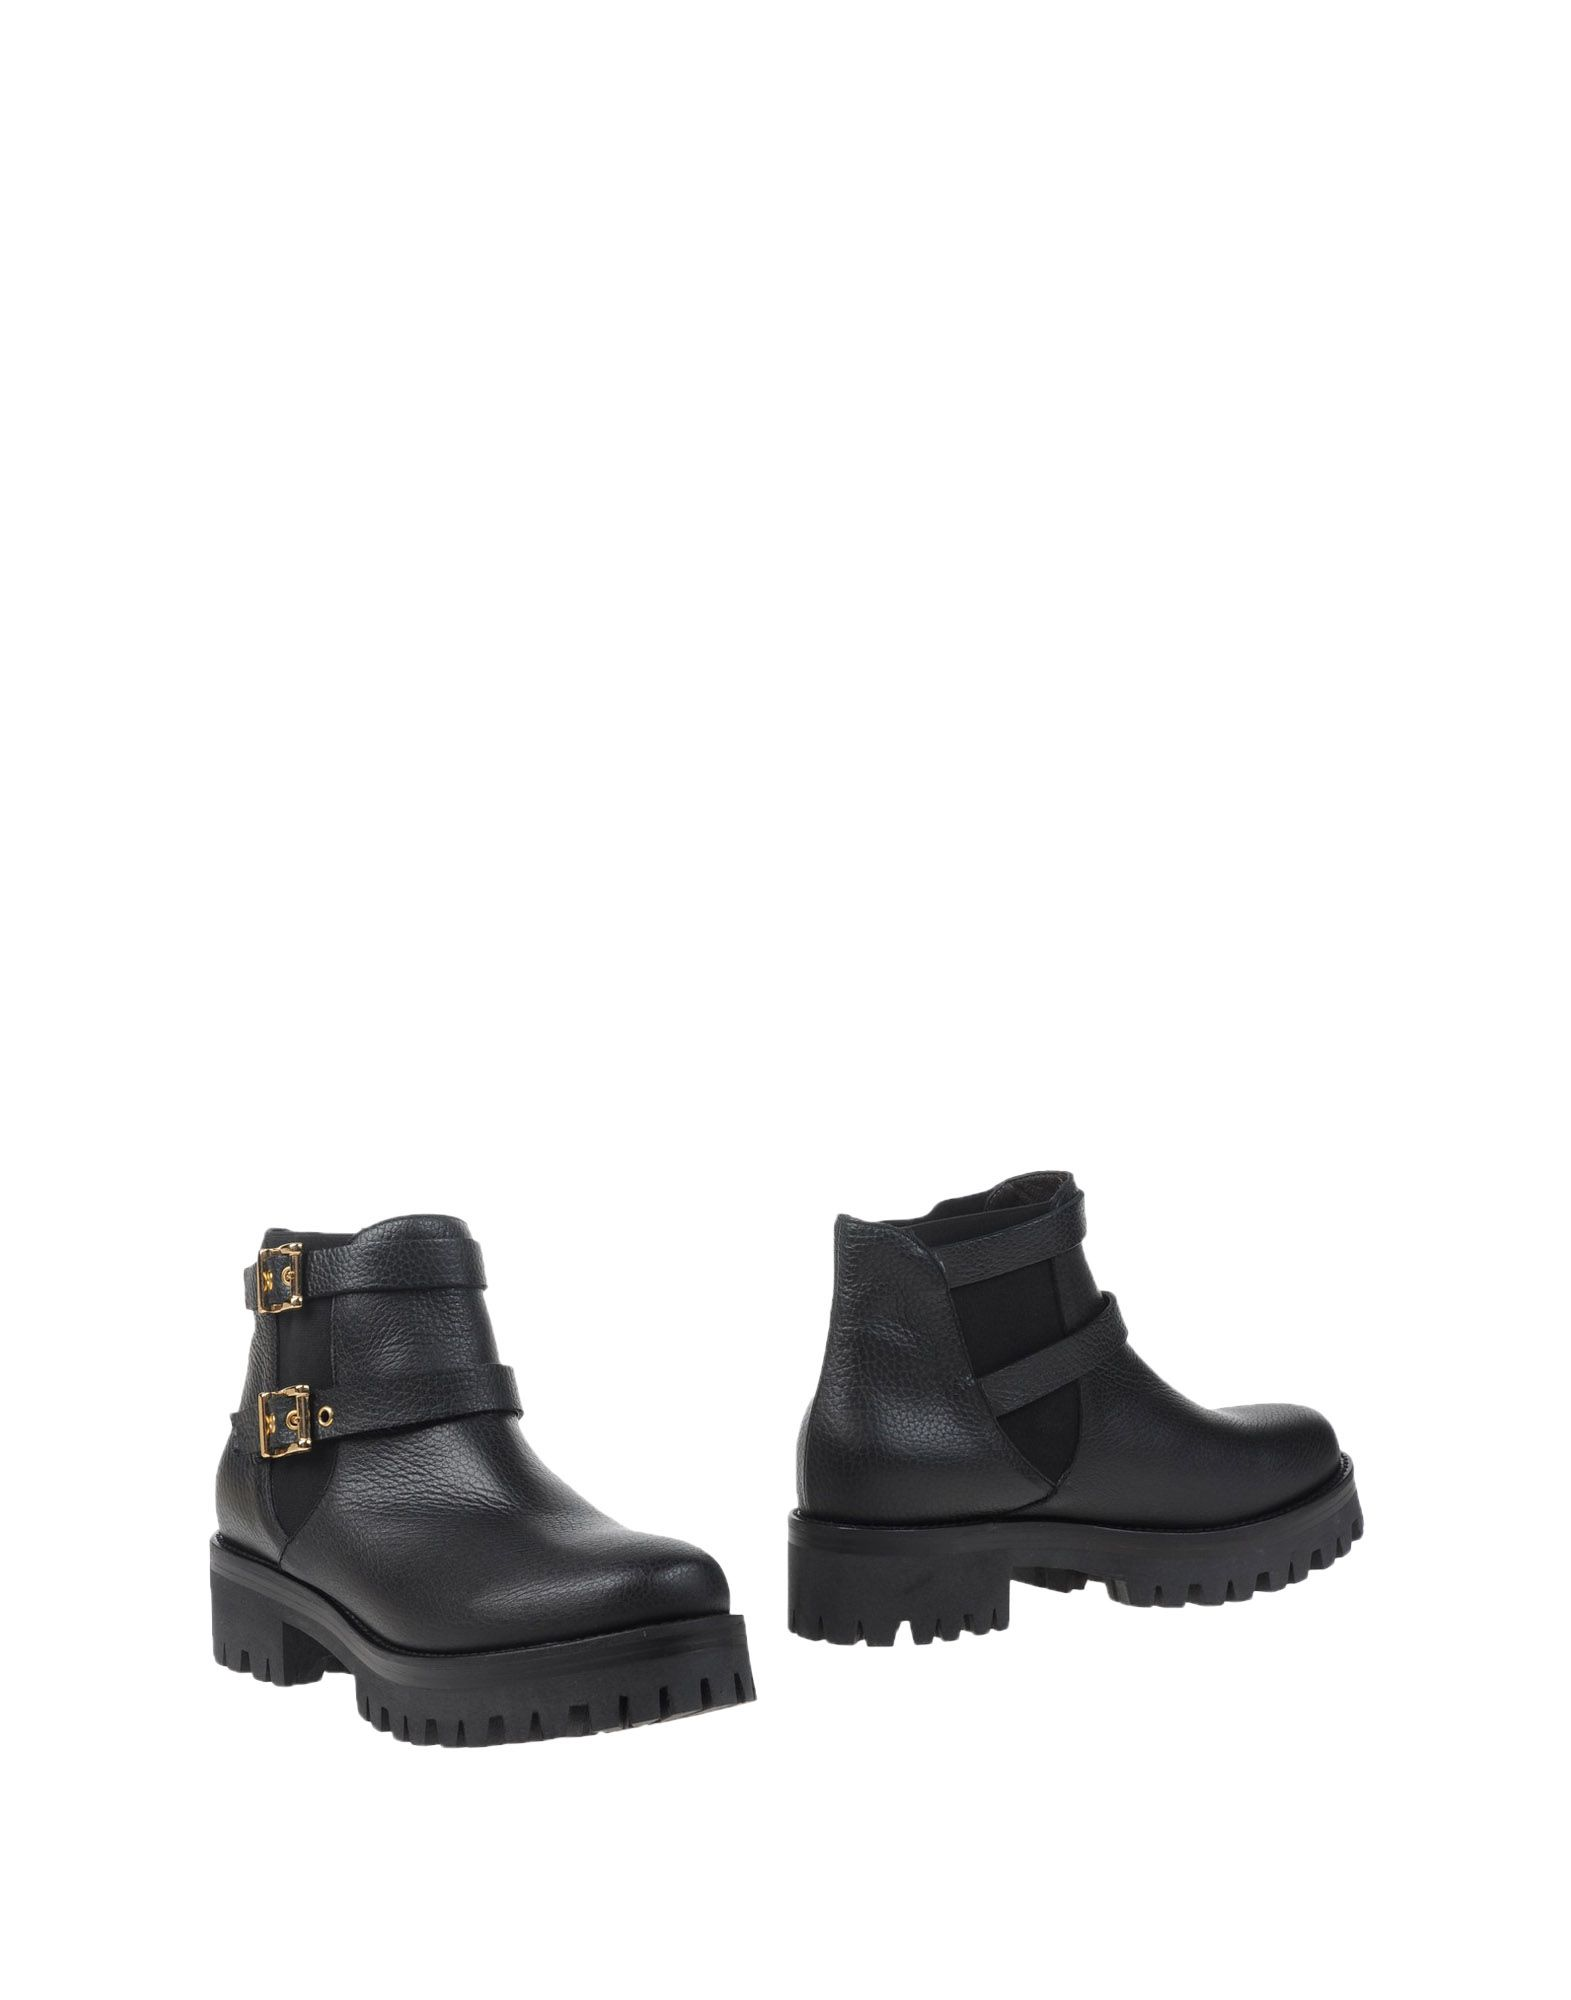 PETER FLOWERS Ankle Boot in Black